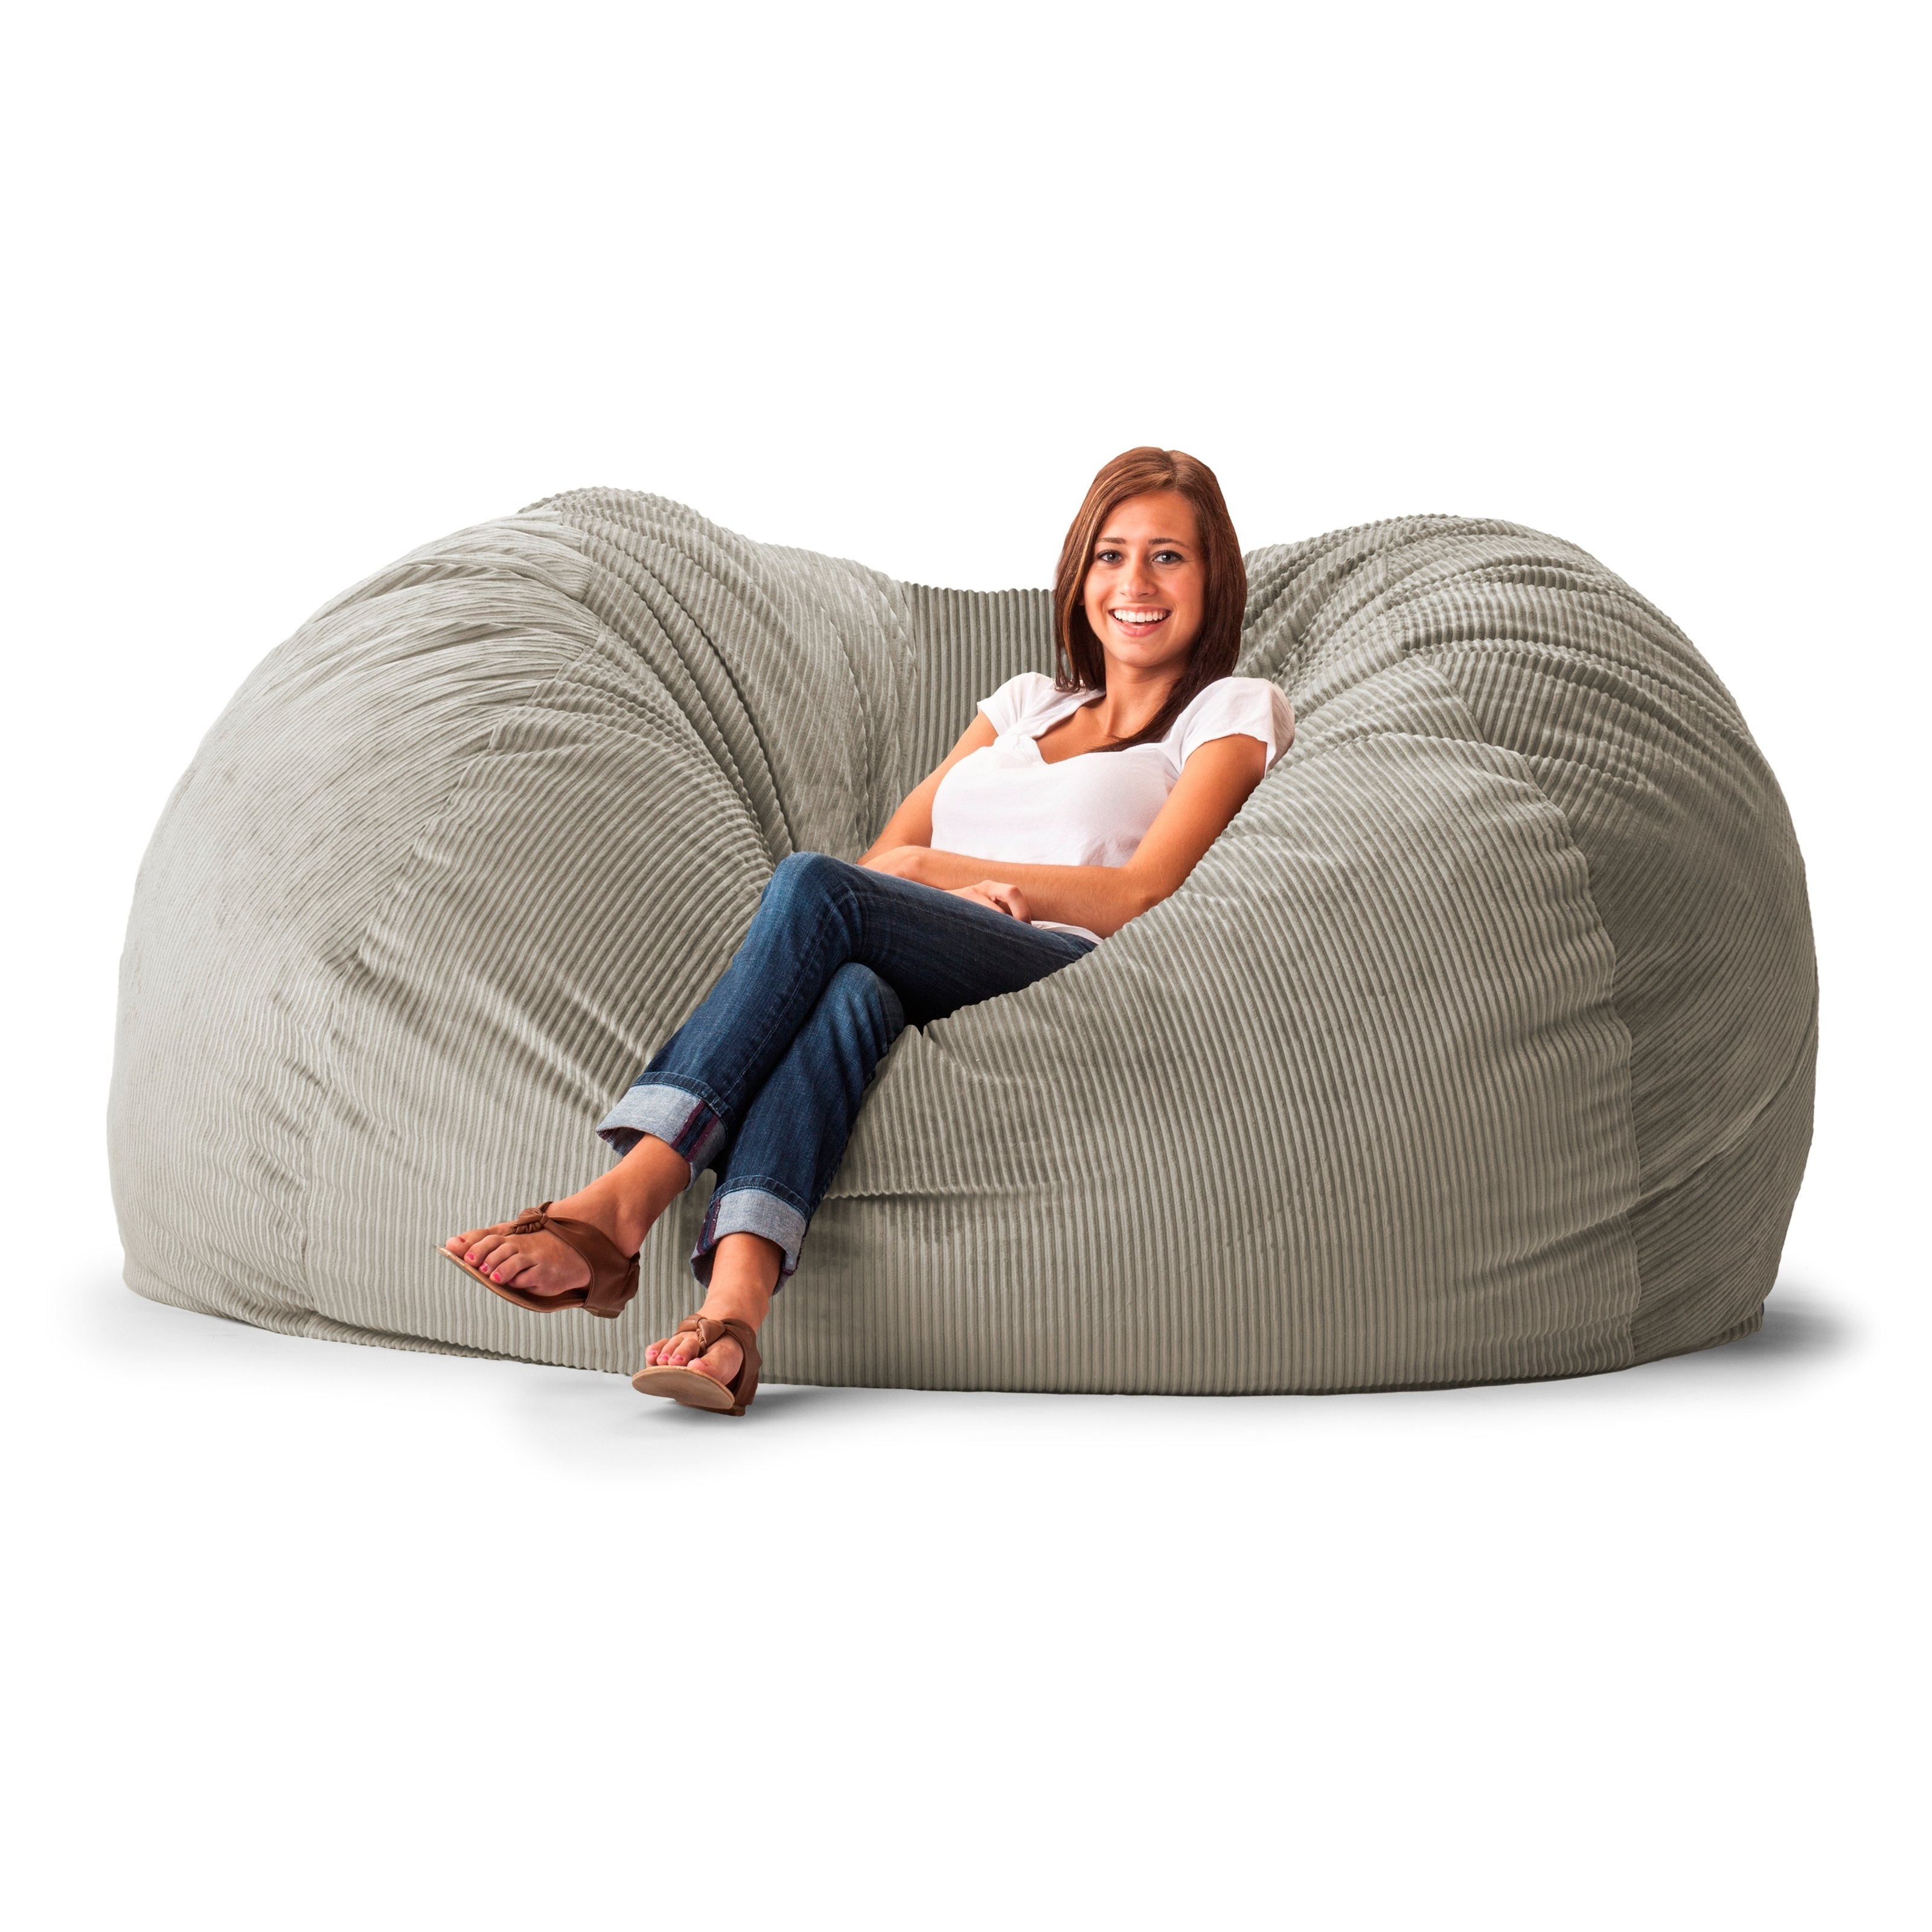 Bean Bag Sofas And Chairs For Most Popular Comfort Bean Bag Sofa – Florist H&g (View 15 of 20)